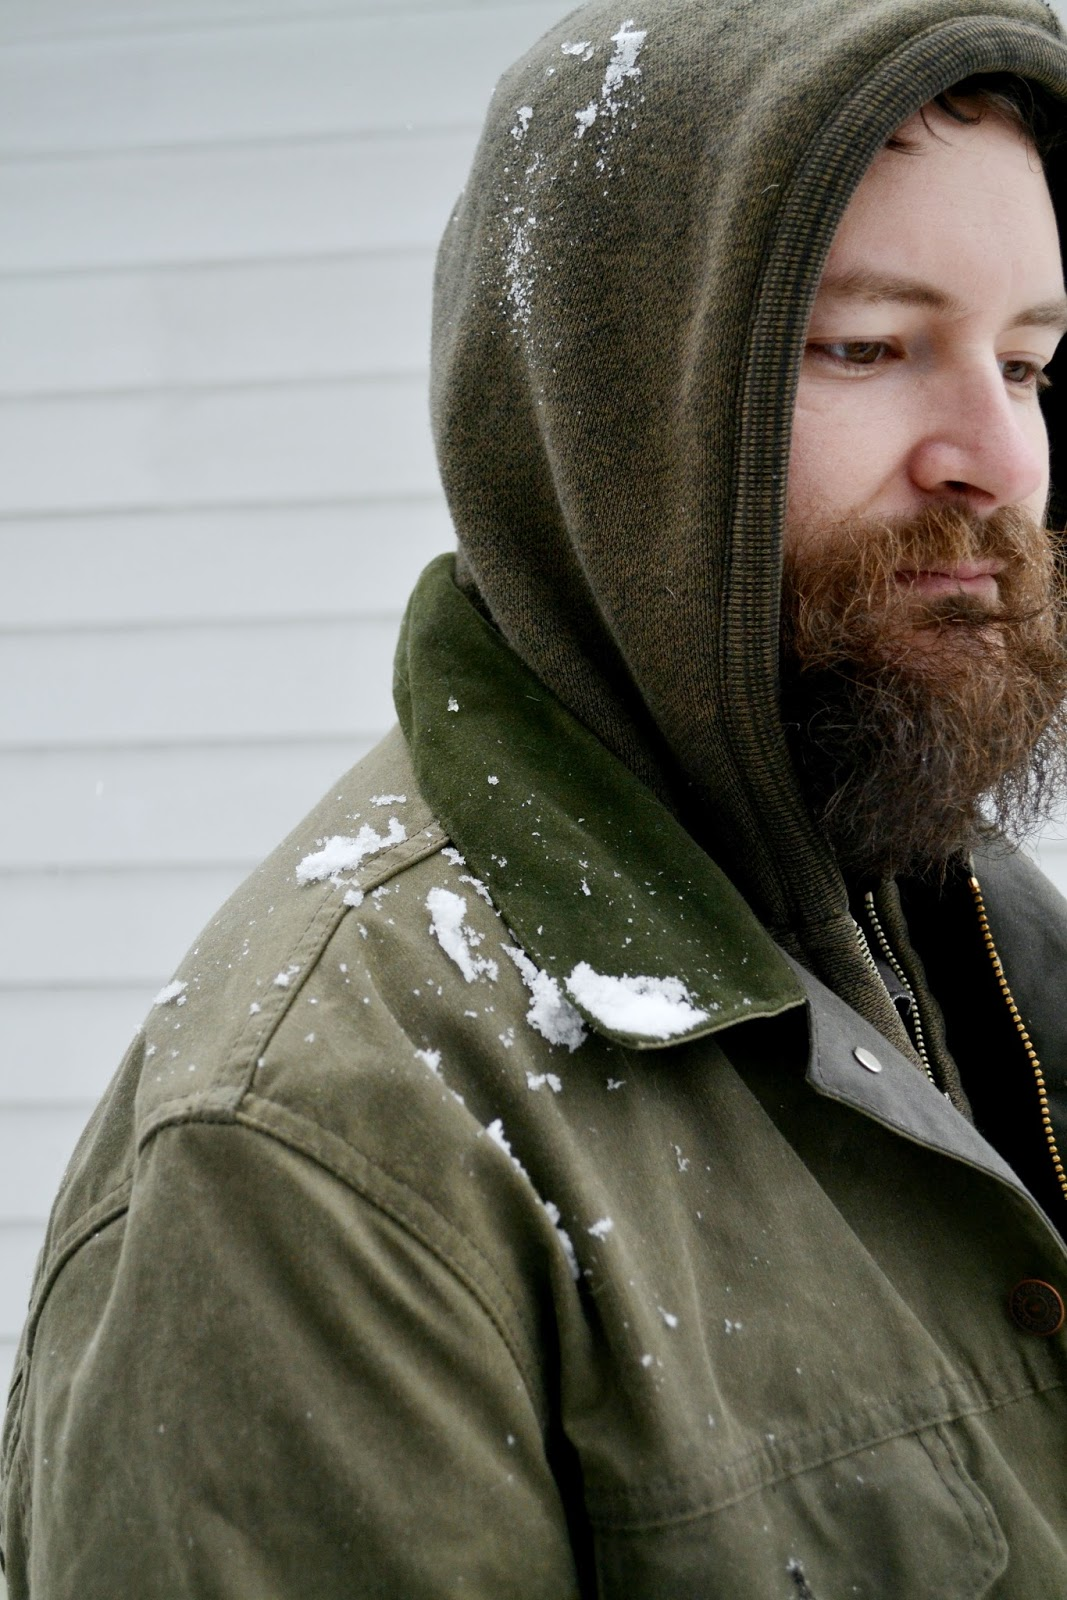 Levi's Filson, coat, beard, winter, jacket